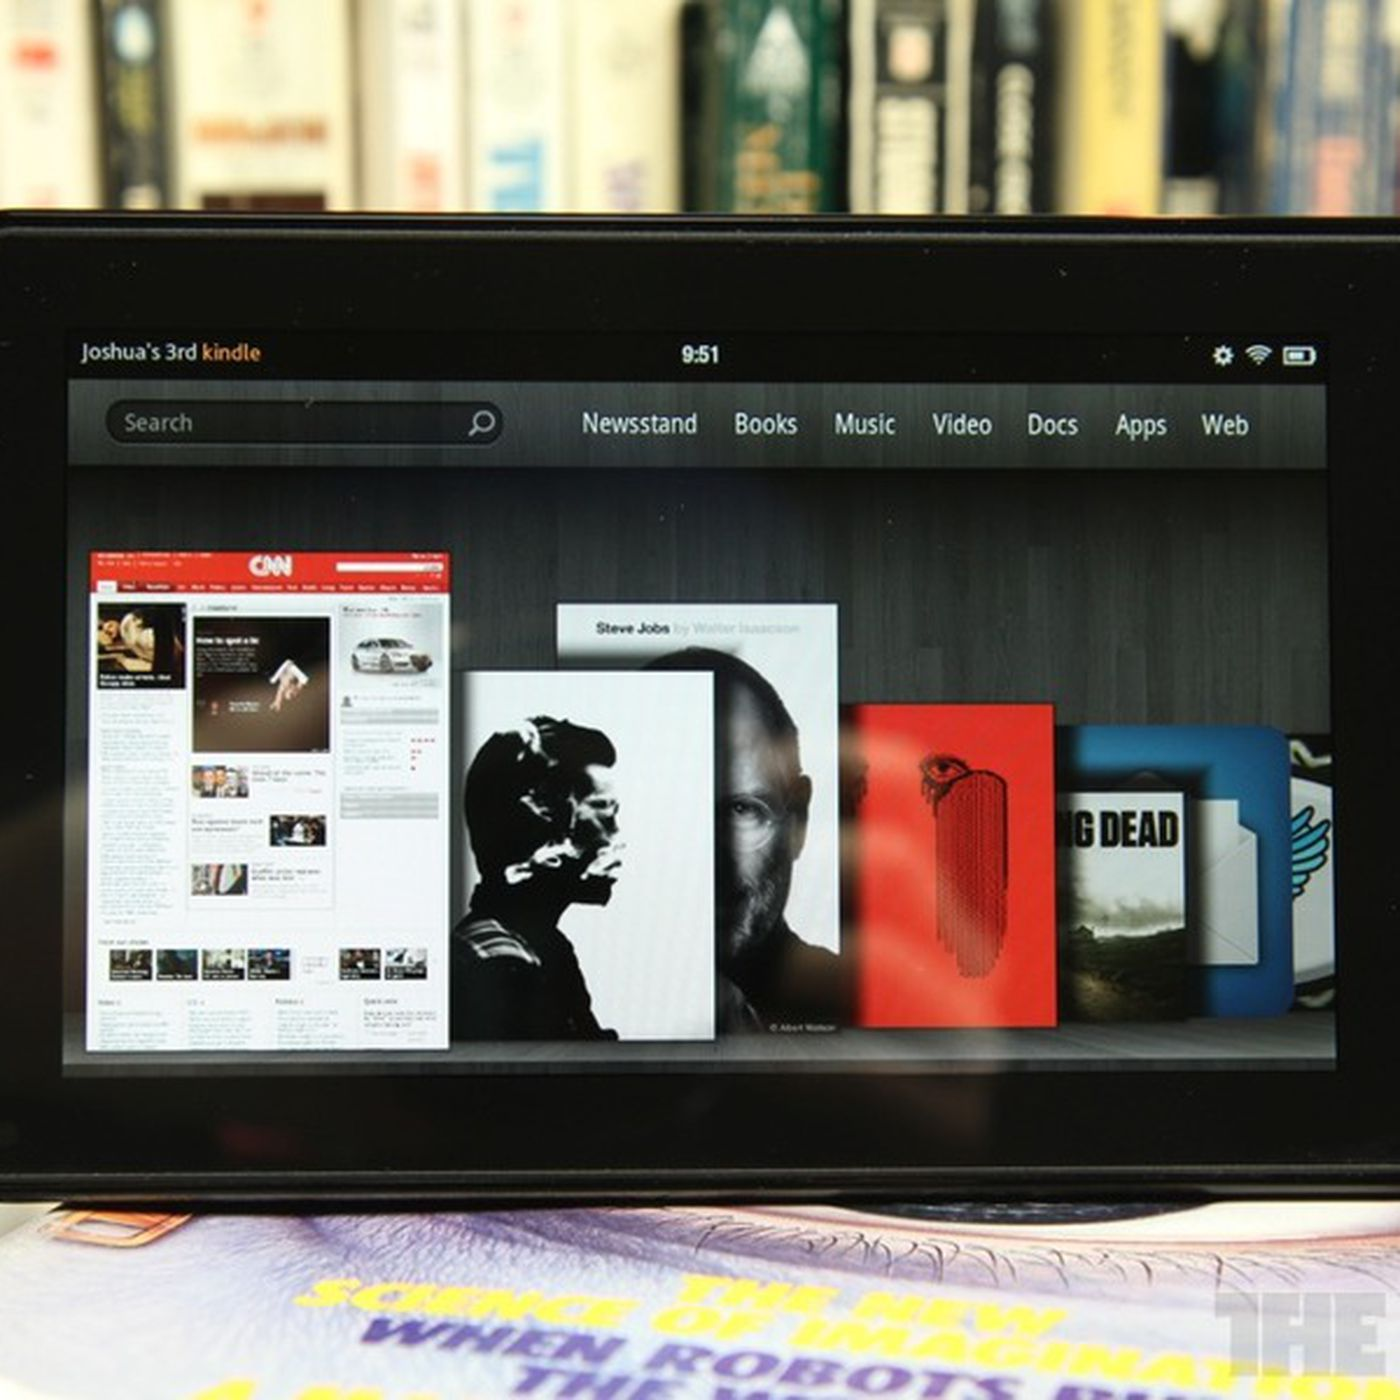 Amazon boasts that the Kindle Fire is sold out, owns 22